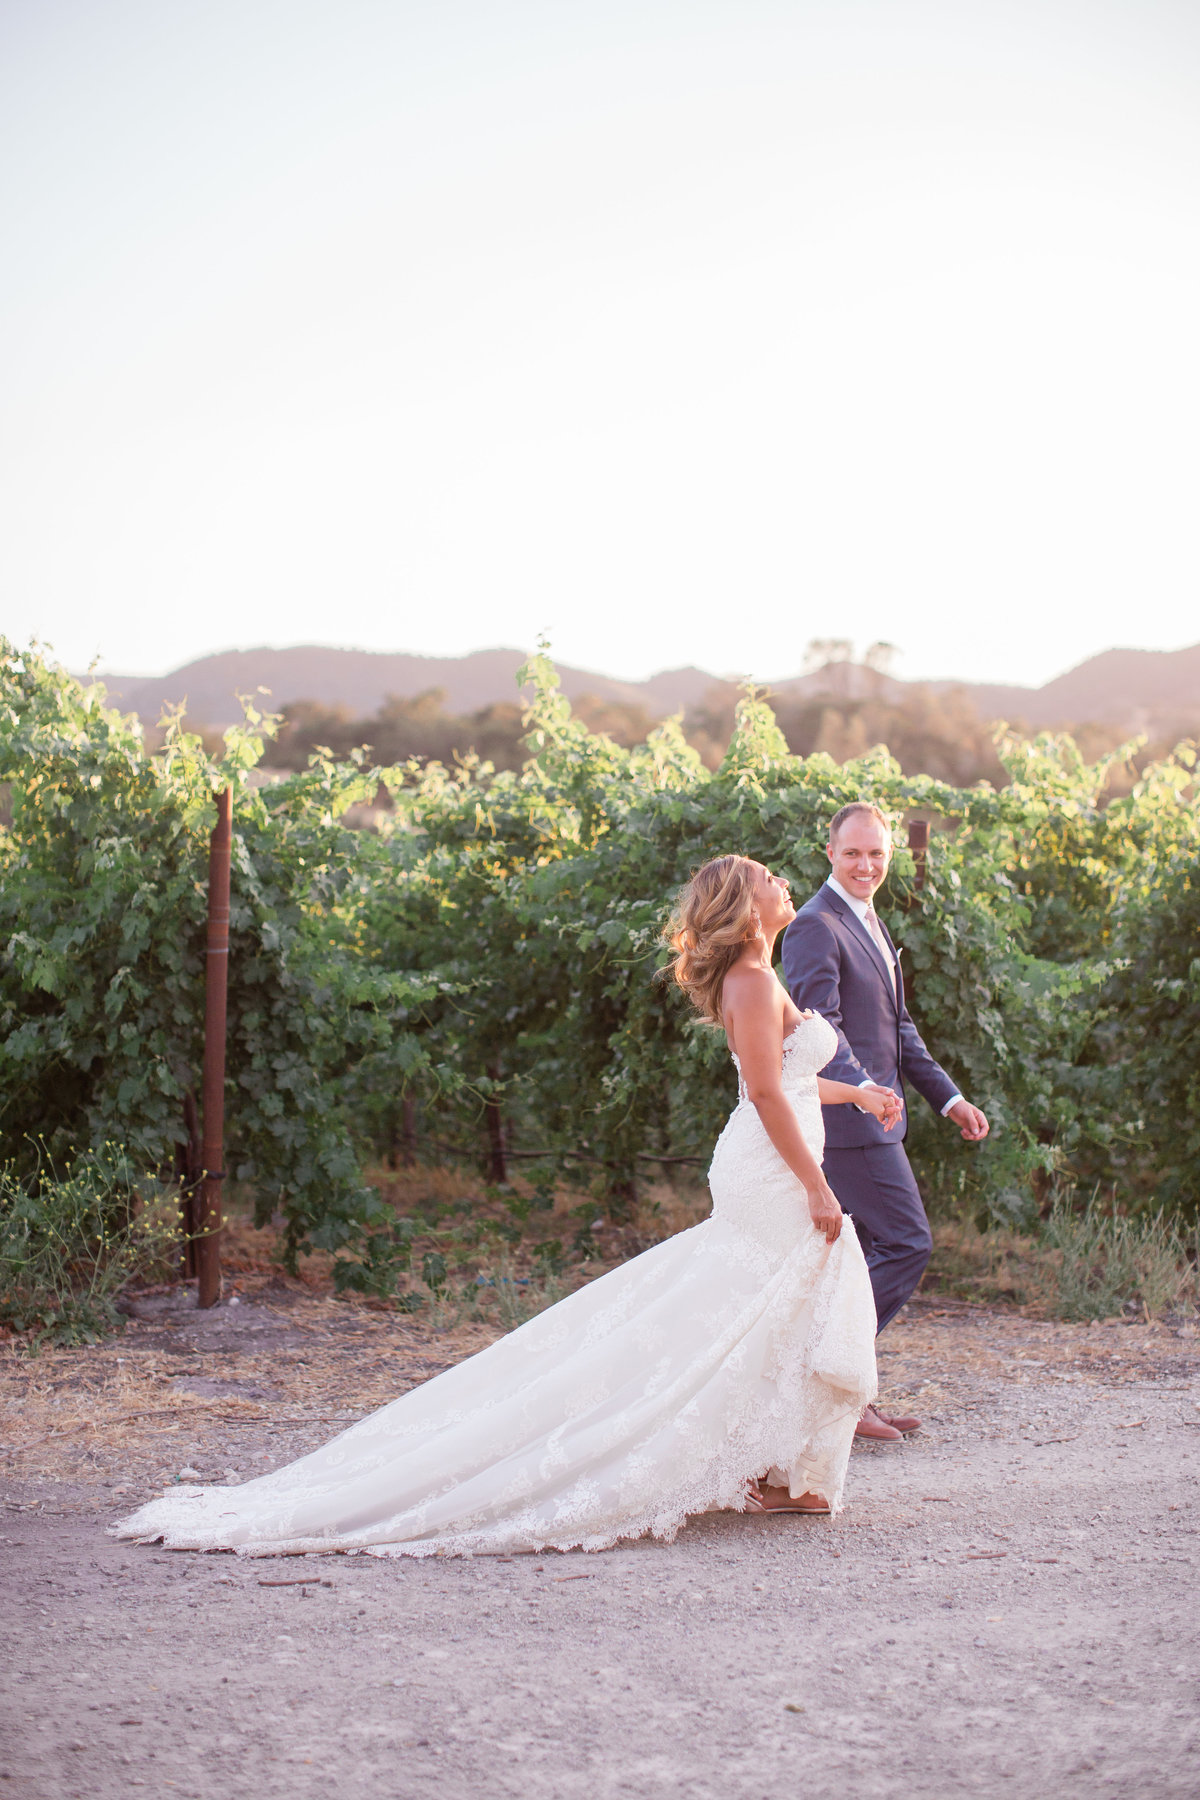 Jenna & Andrew's Oyster Ridge Wedding | Paso Robles Wedding Photographer | Katie Schoepflin Photography562